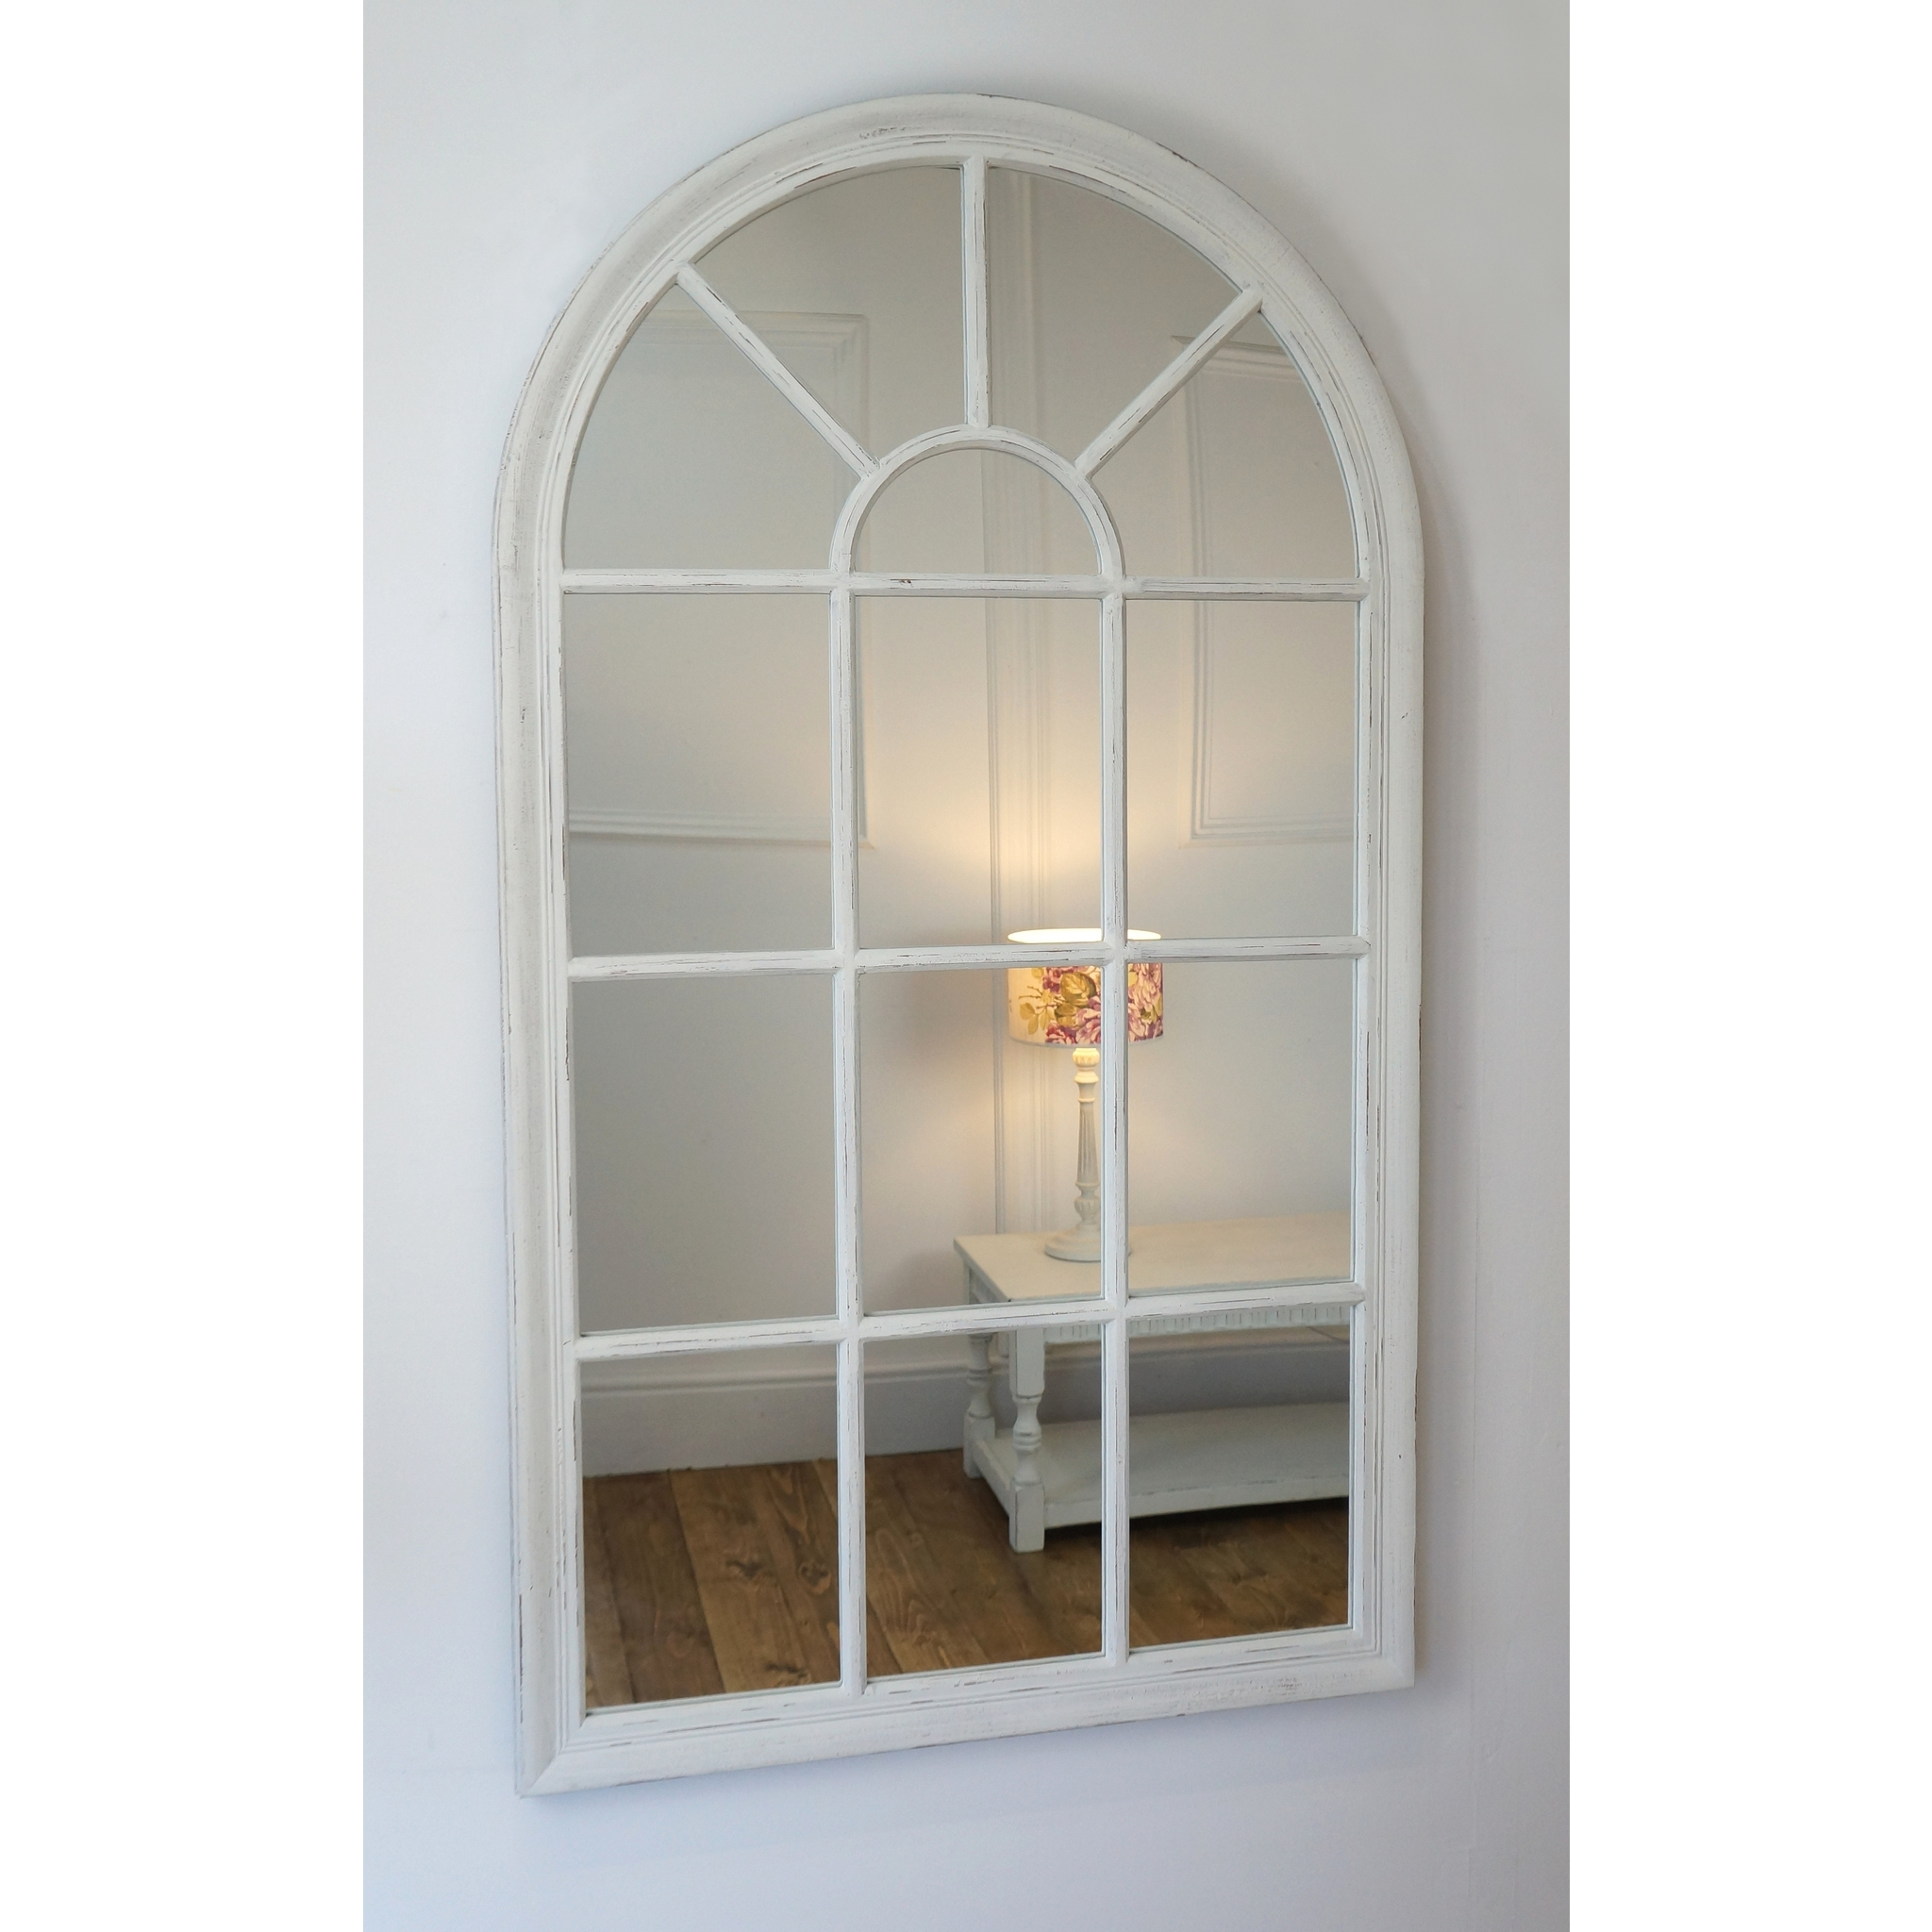 Arabella arched white mirror home decor my home for White mirror